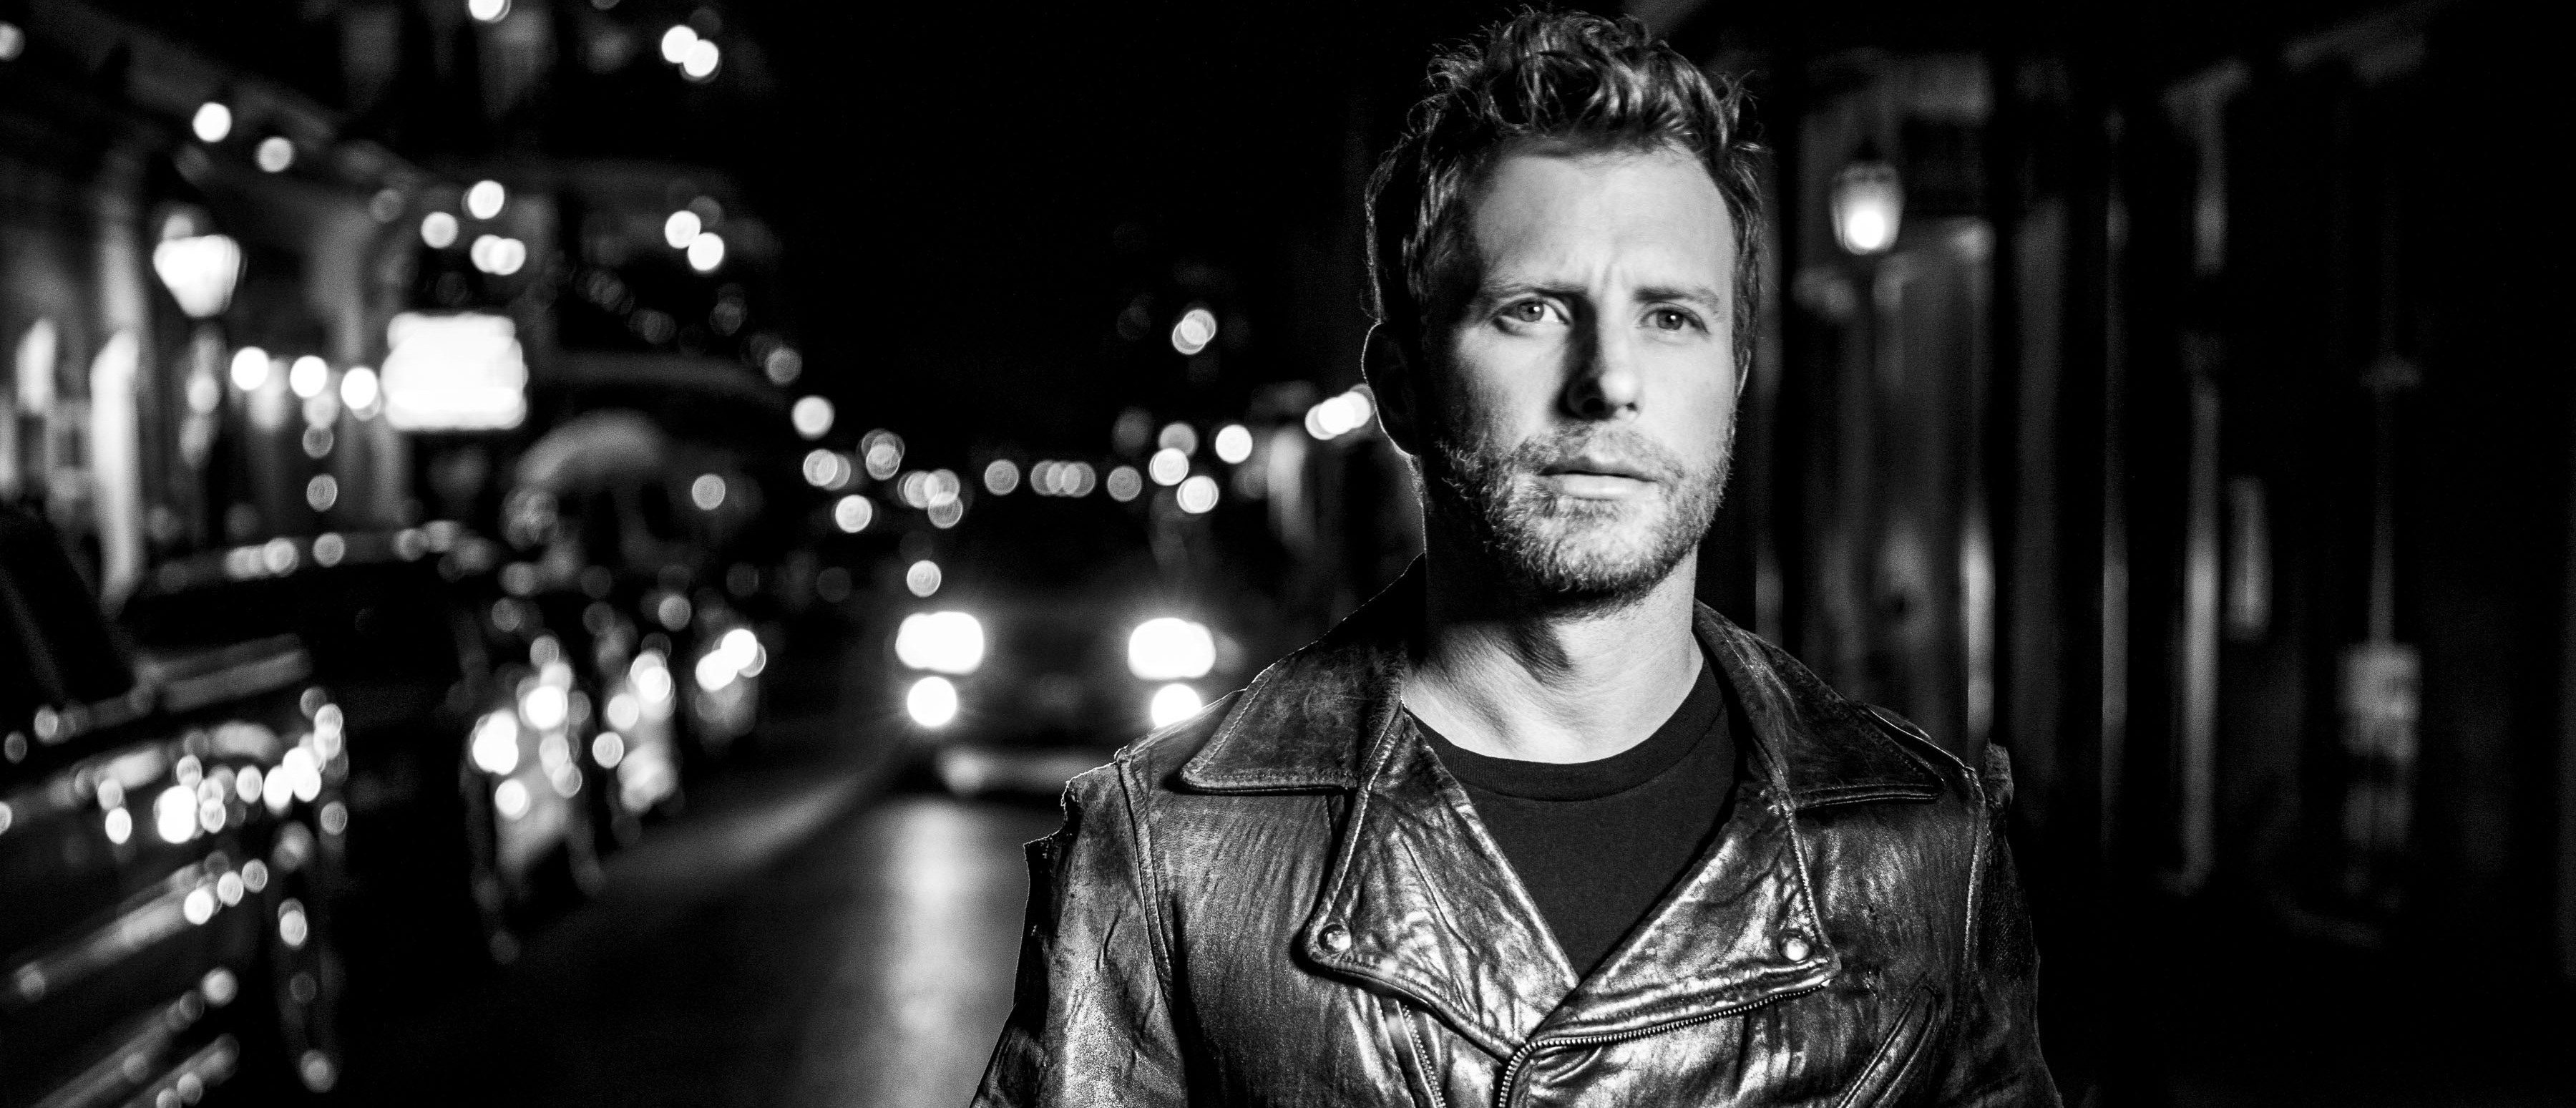 nine tour dierks fall stops adds com mgid bentley cmt image ao quality mo news columbia